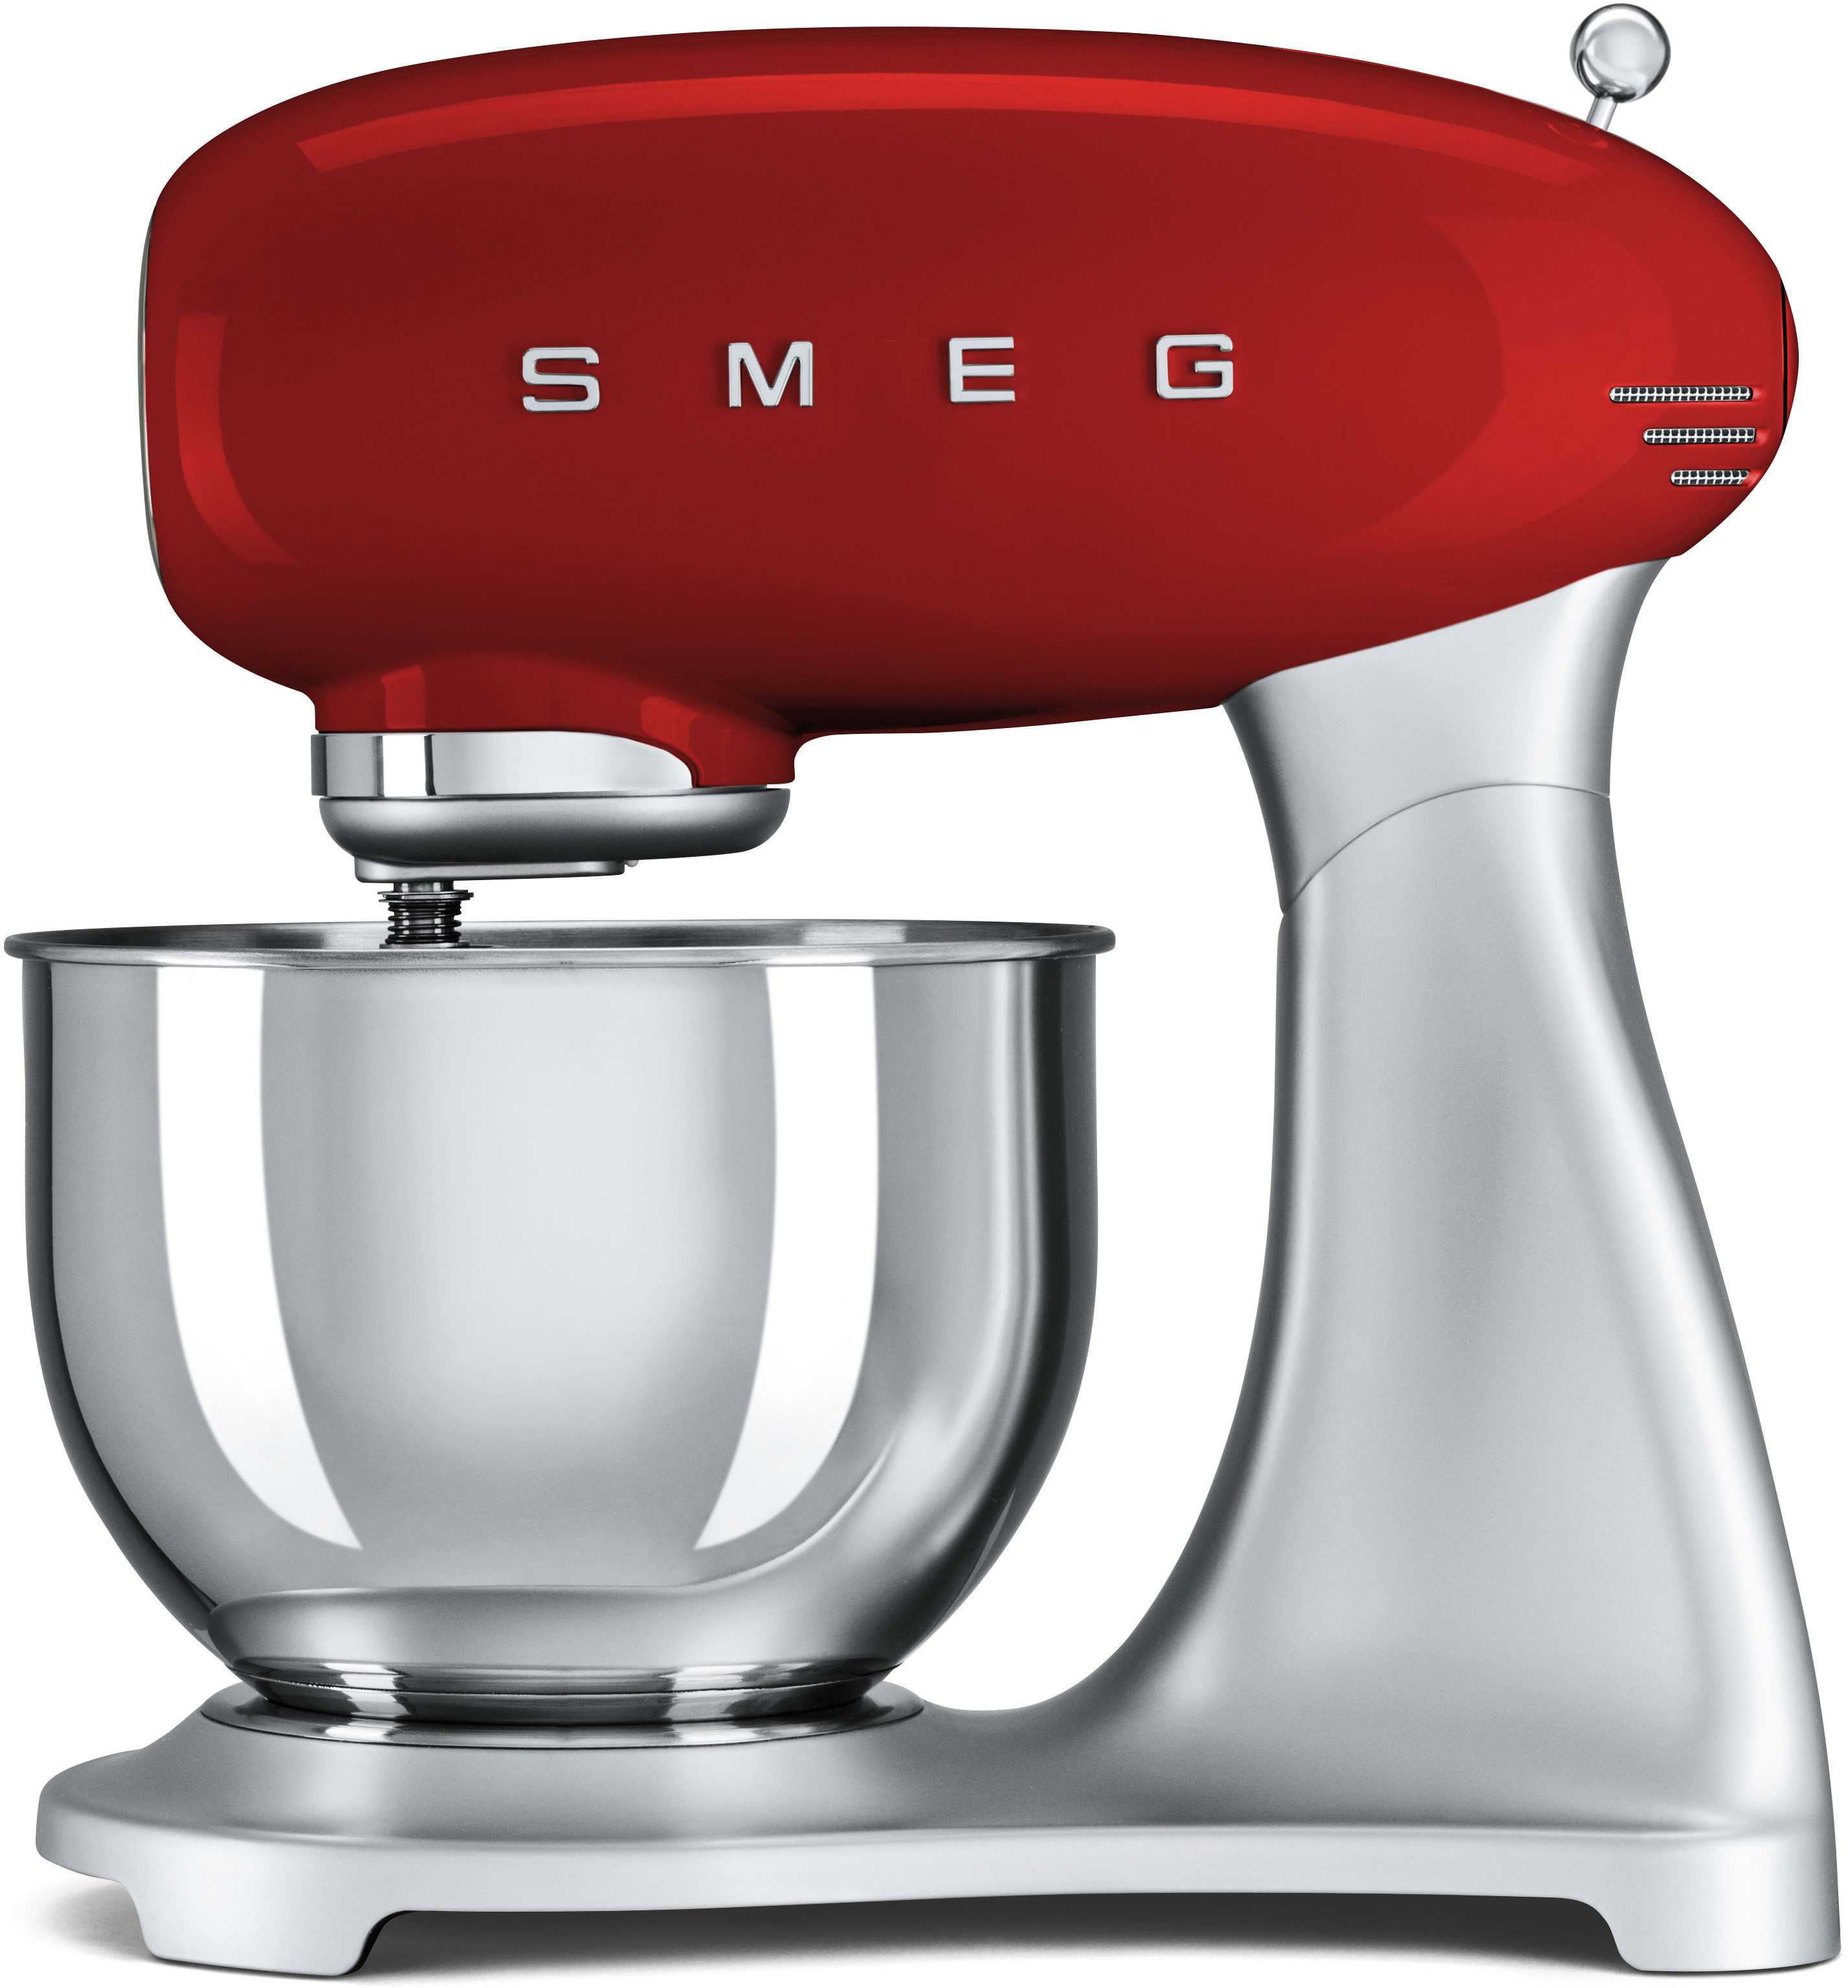 Smeg Smf01rdus Countertop Stand Mixer With 10 Sds 3 Attachments Included Planetary Action 5 Qt Stainless Steel Bowl And Ergonomic Handle Red